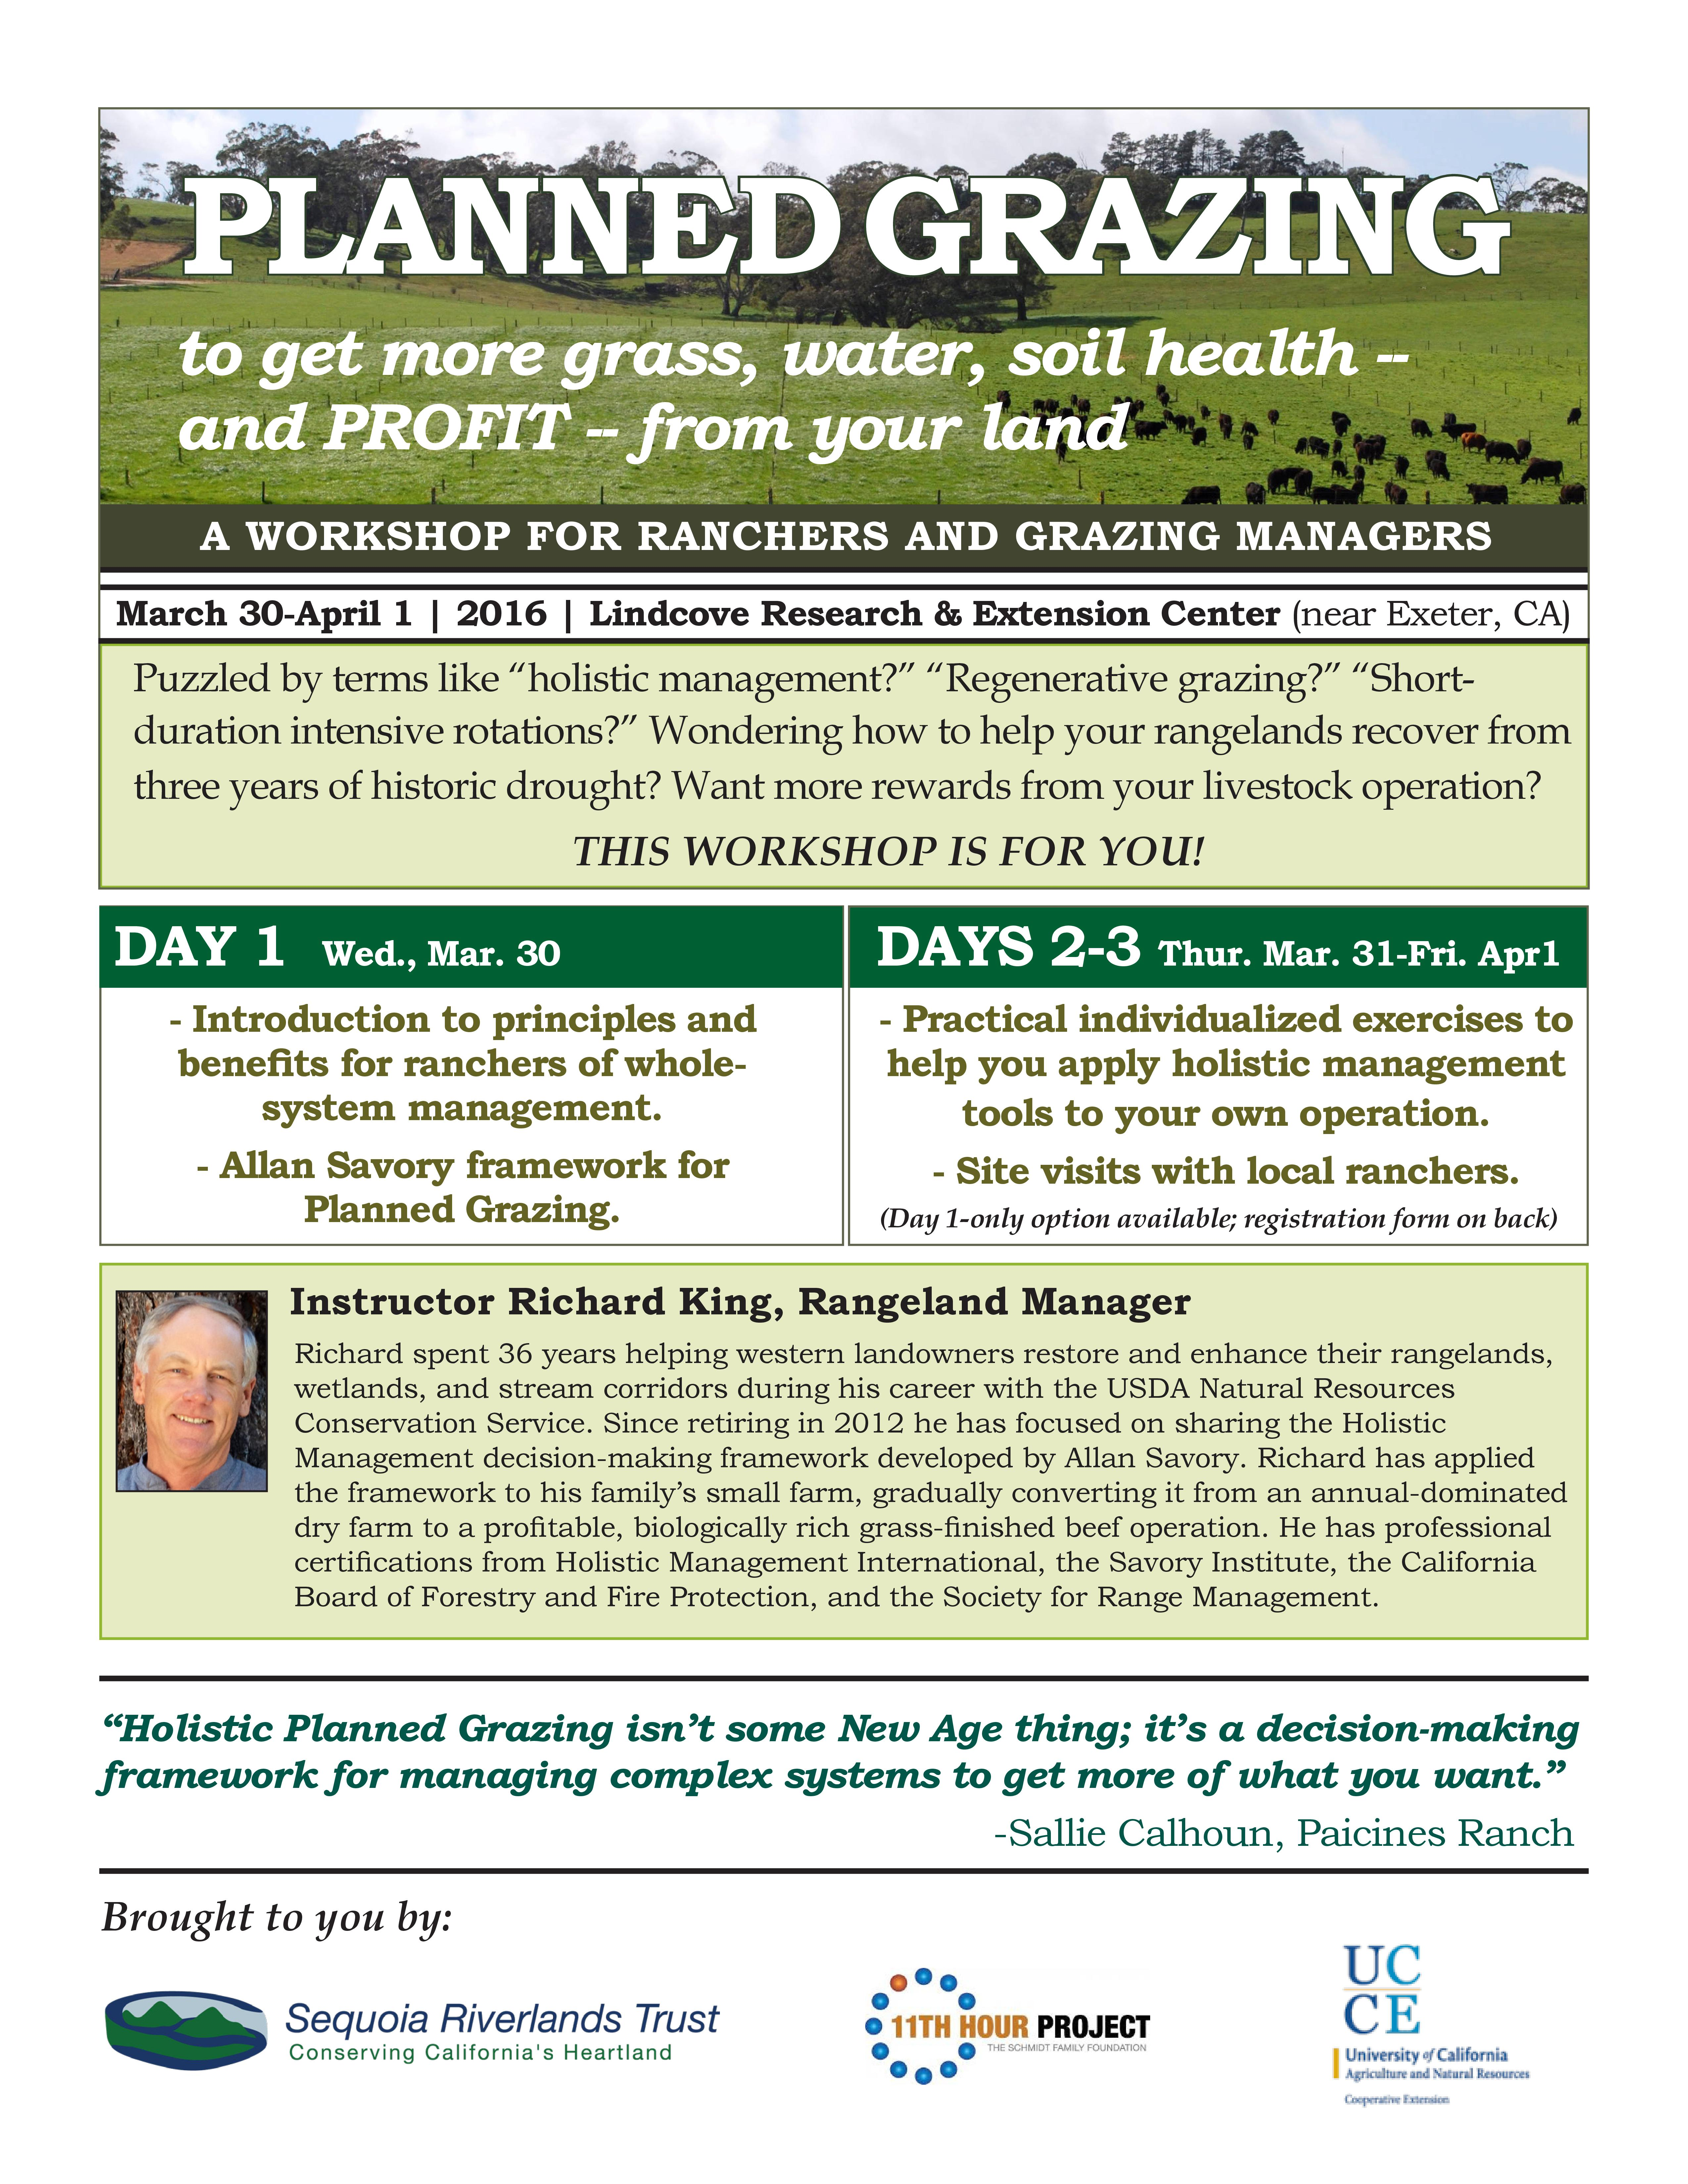 Planned Grazing Workshop for Ranchers and Grazing Managers